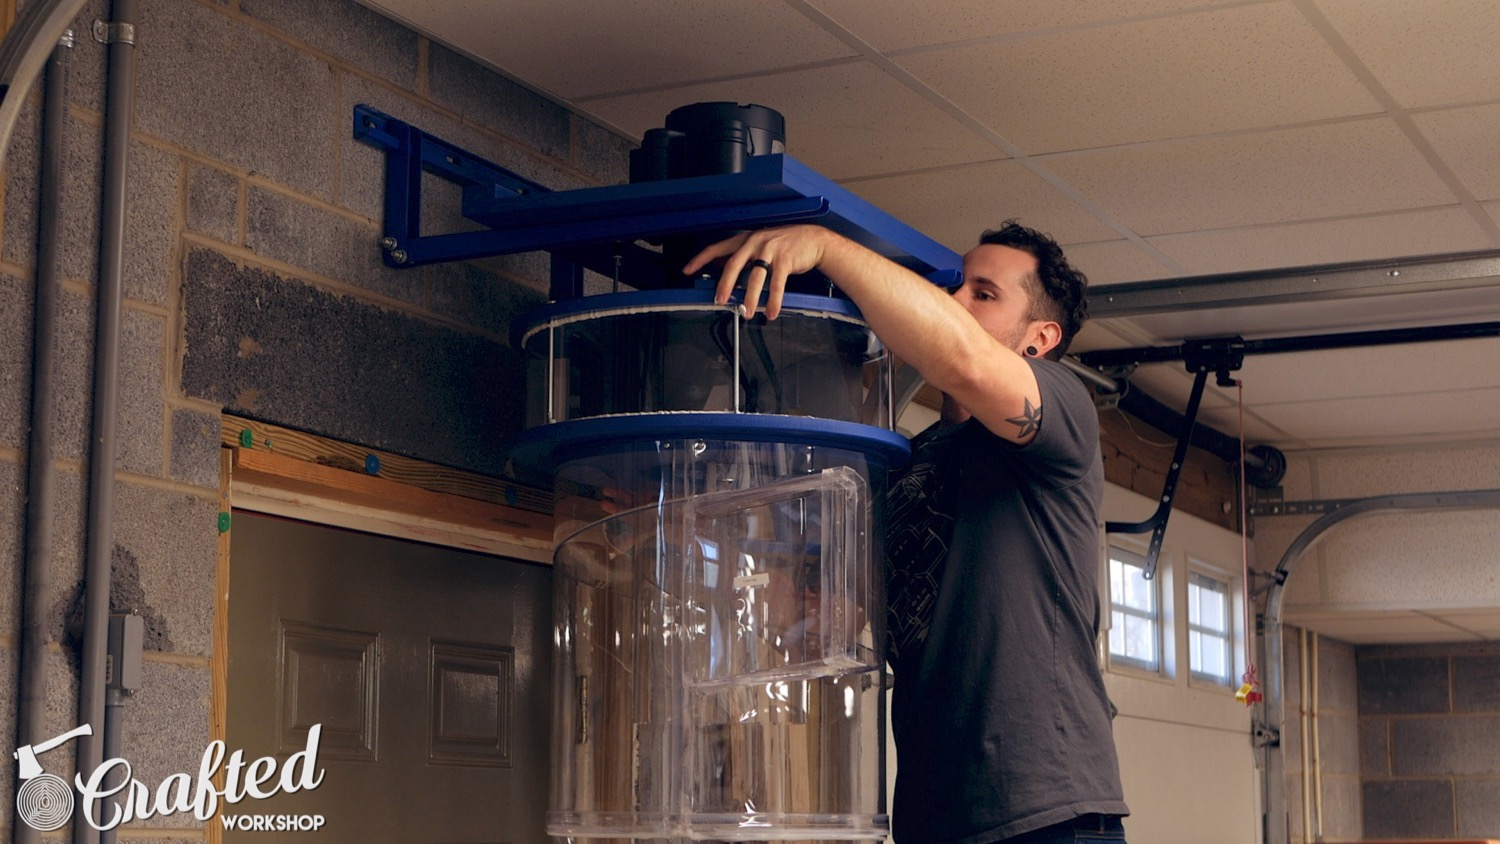 installing the clearvue cv1800 dust collector